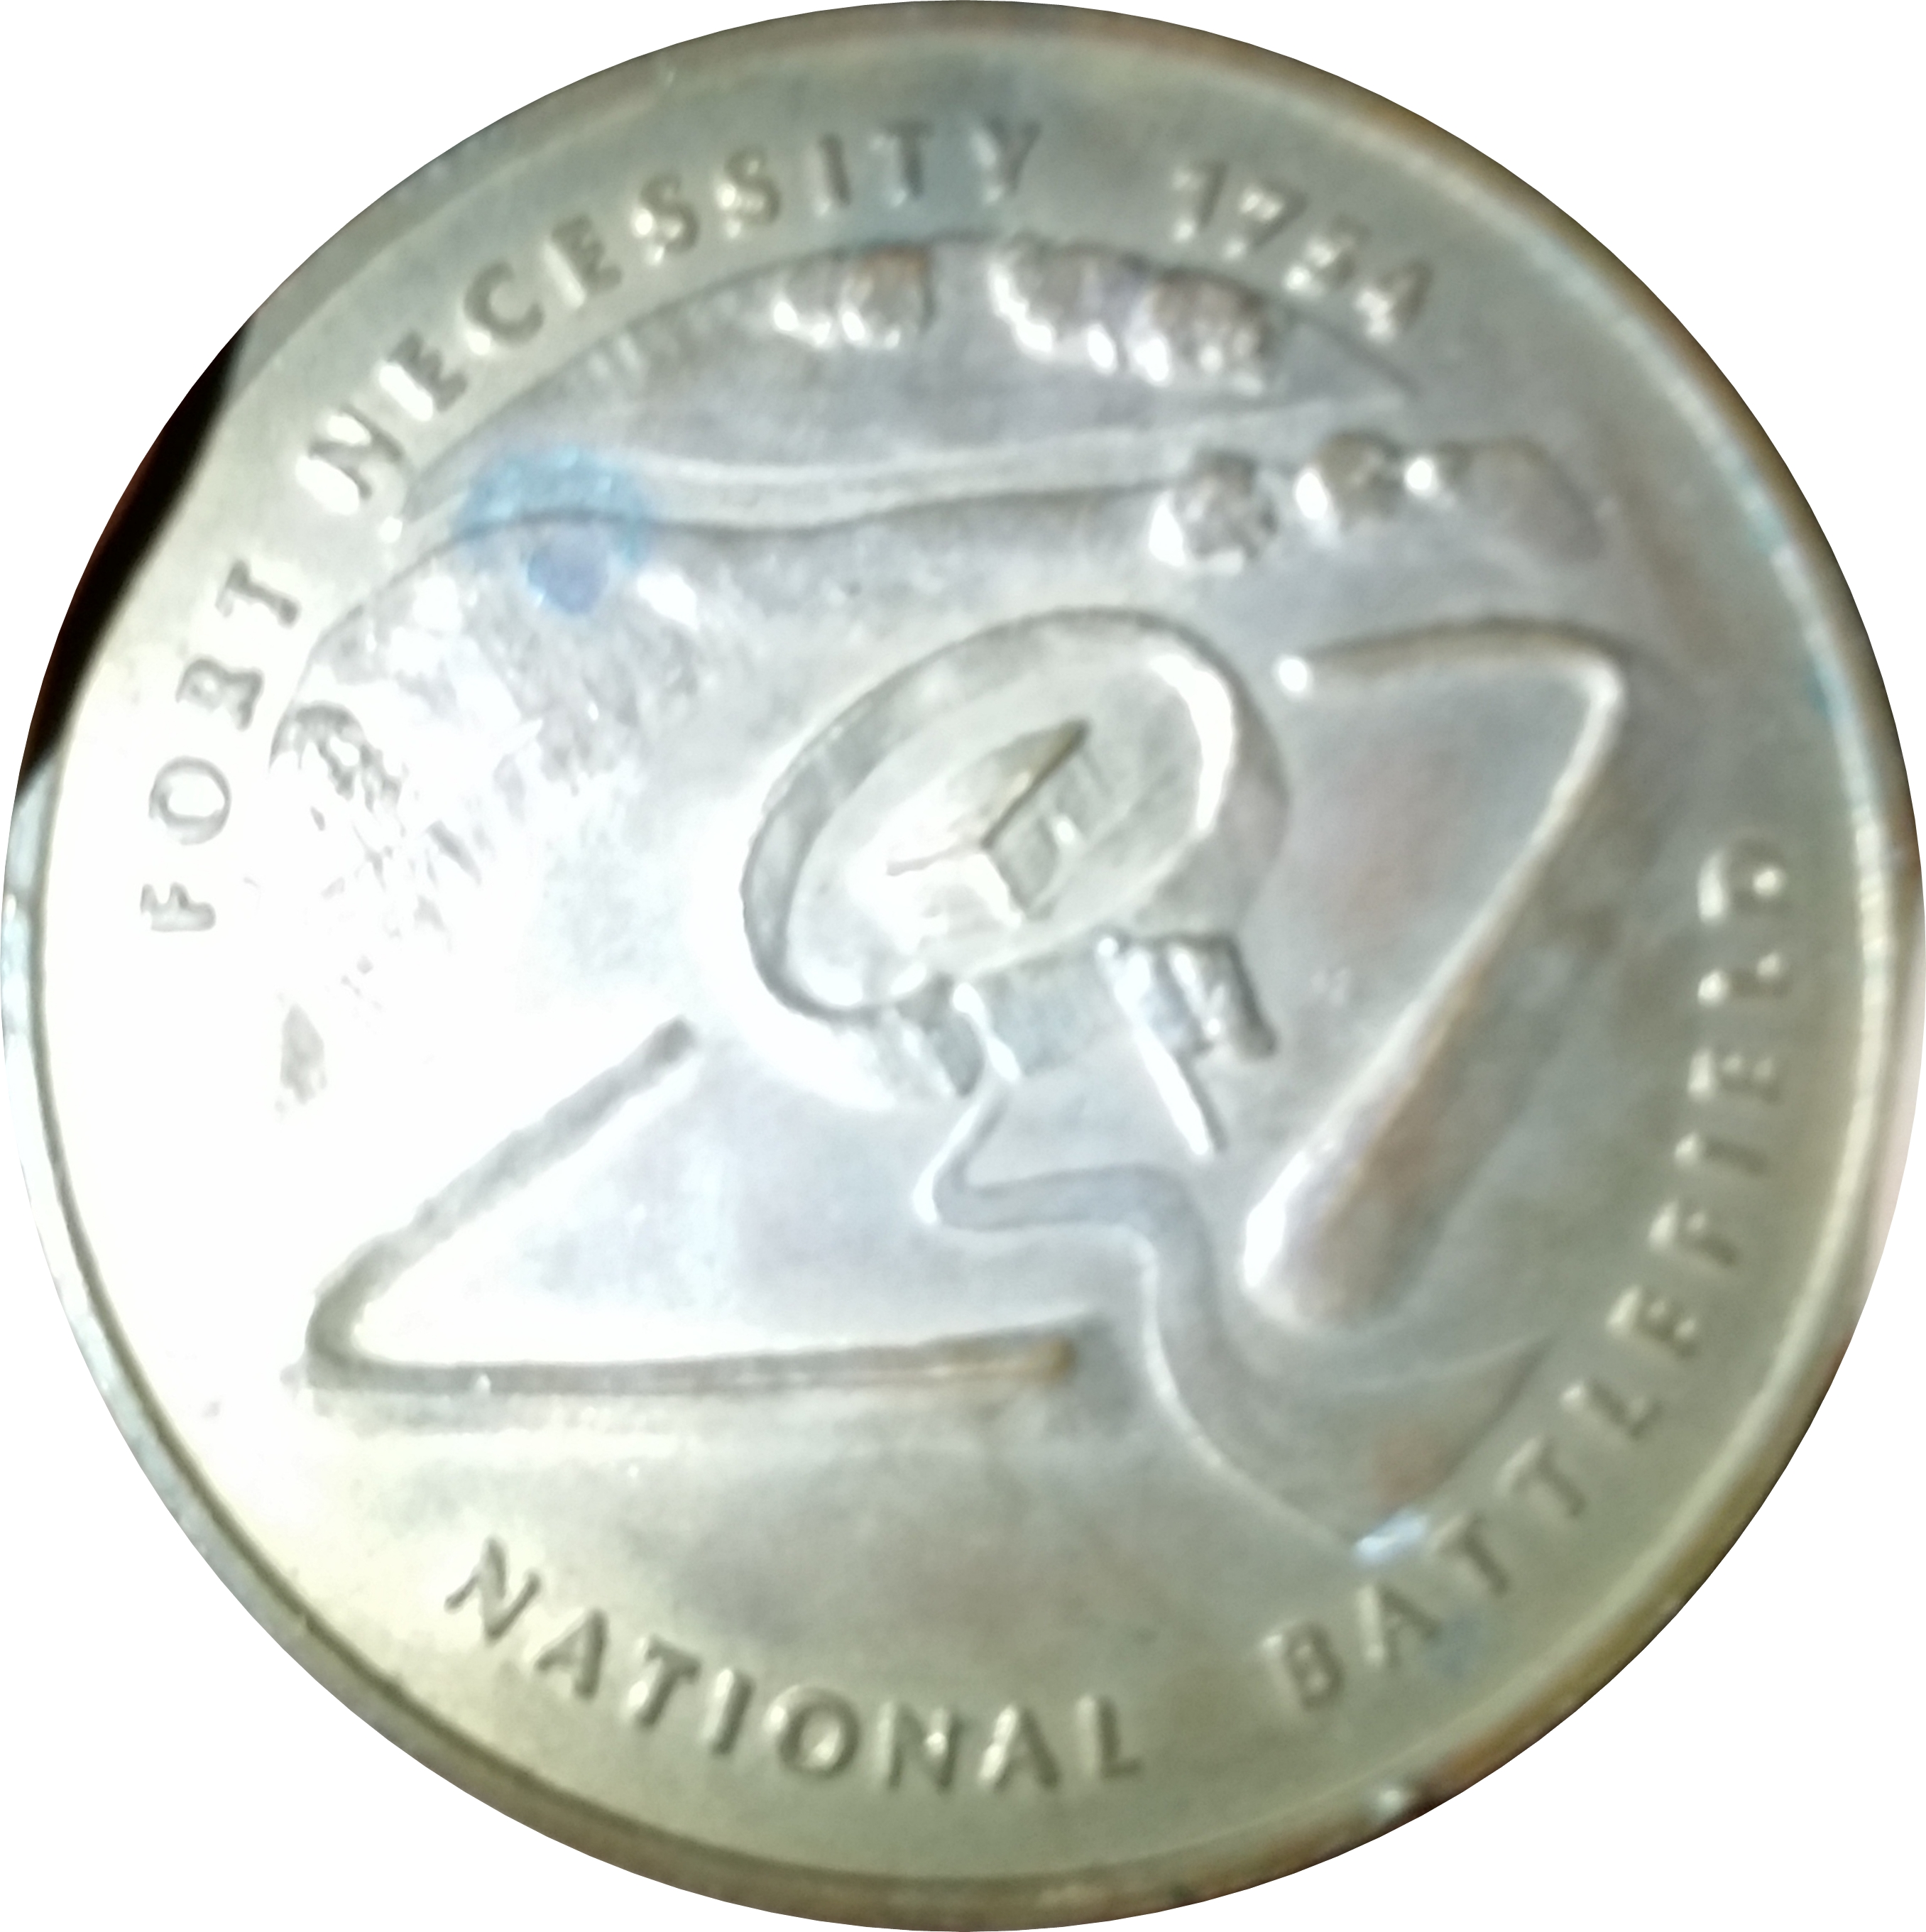 serial mission number flight wikipedia coin space gemini medallion flown medallions front silver apollo robbins and crew emblem wiki nasa dates names